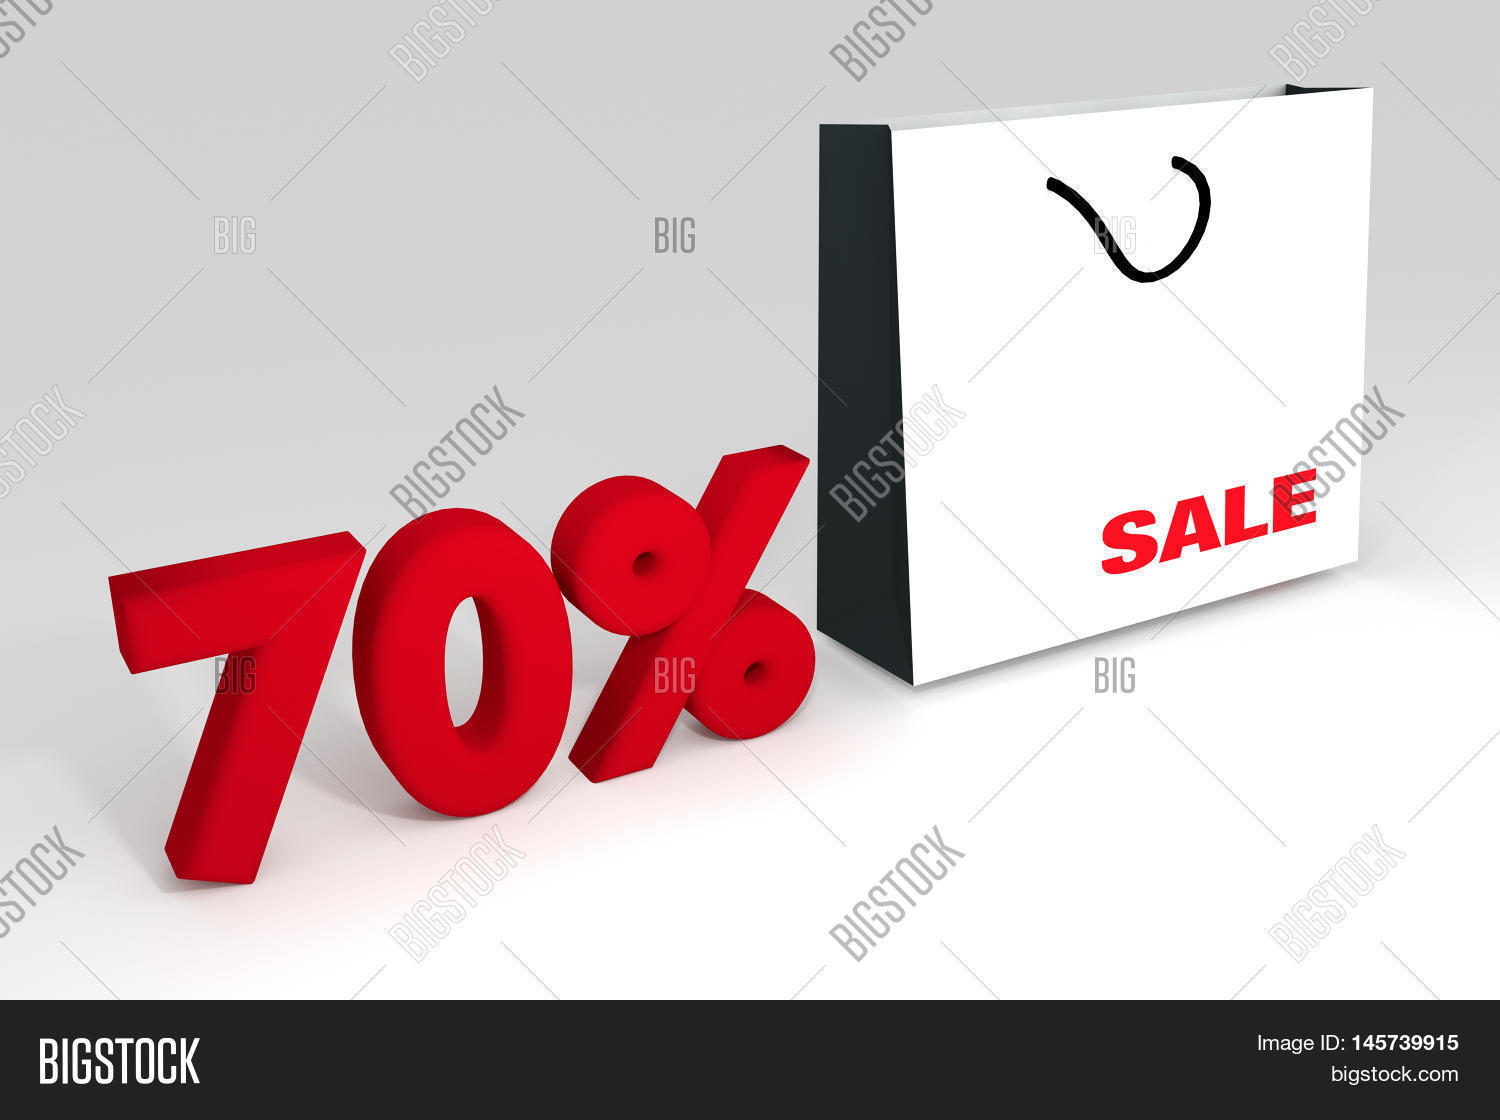 53b38d8a48b 70% sale off promotion for product selling,white shopping bag and text